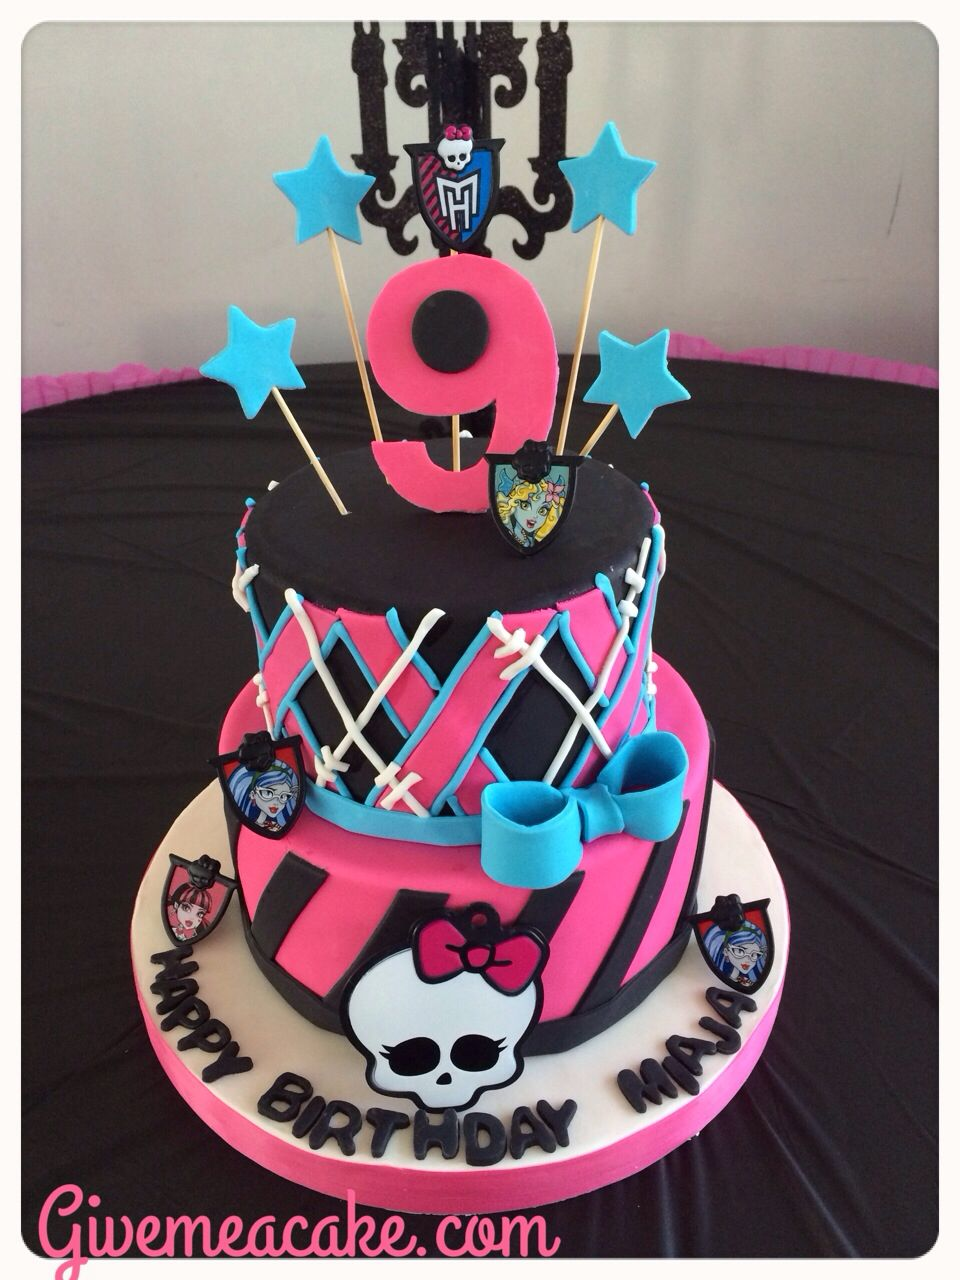 Monster High Birthday Party Cake From Givemeacake Customized Cakes At Edison Nj Contact Email Sshennnycgmail